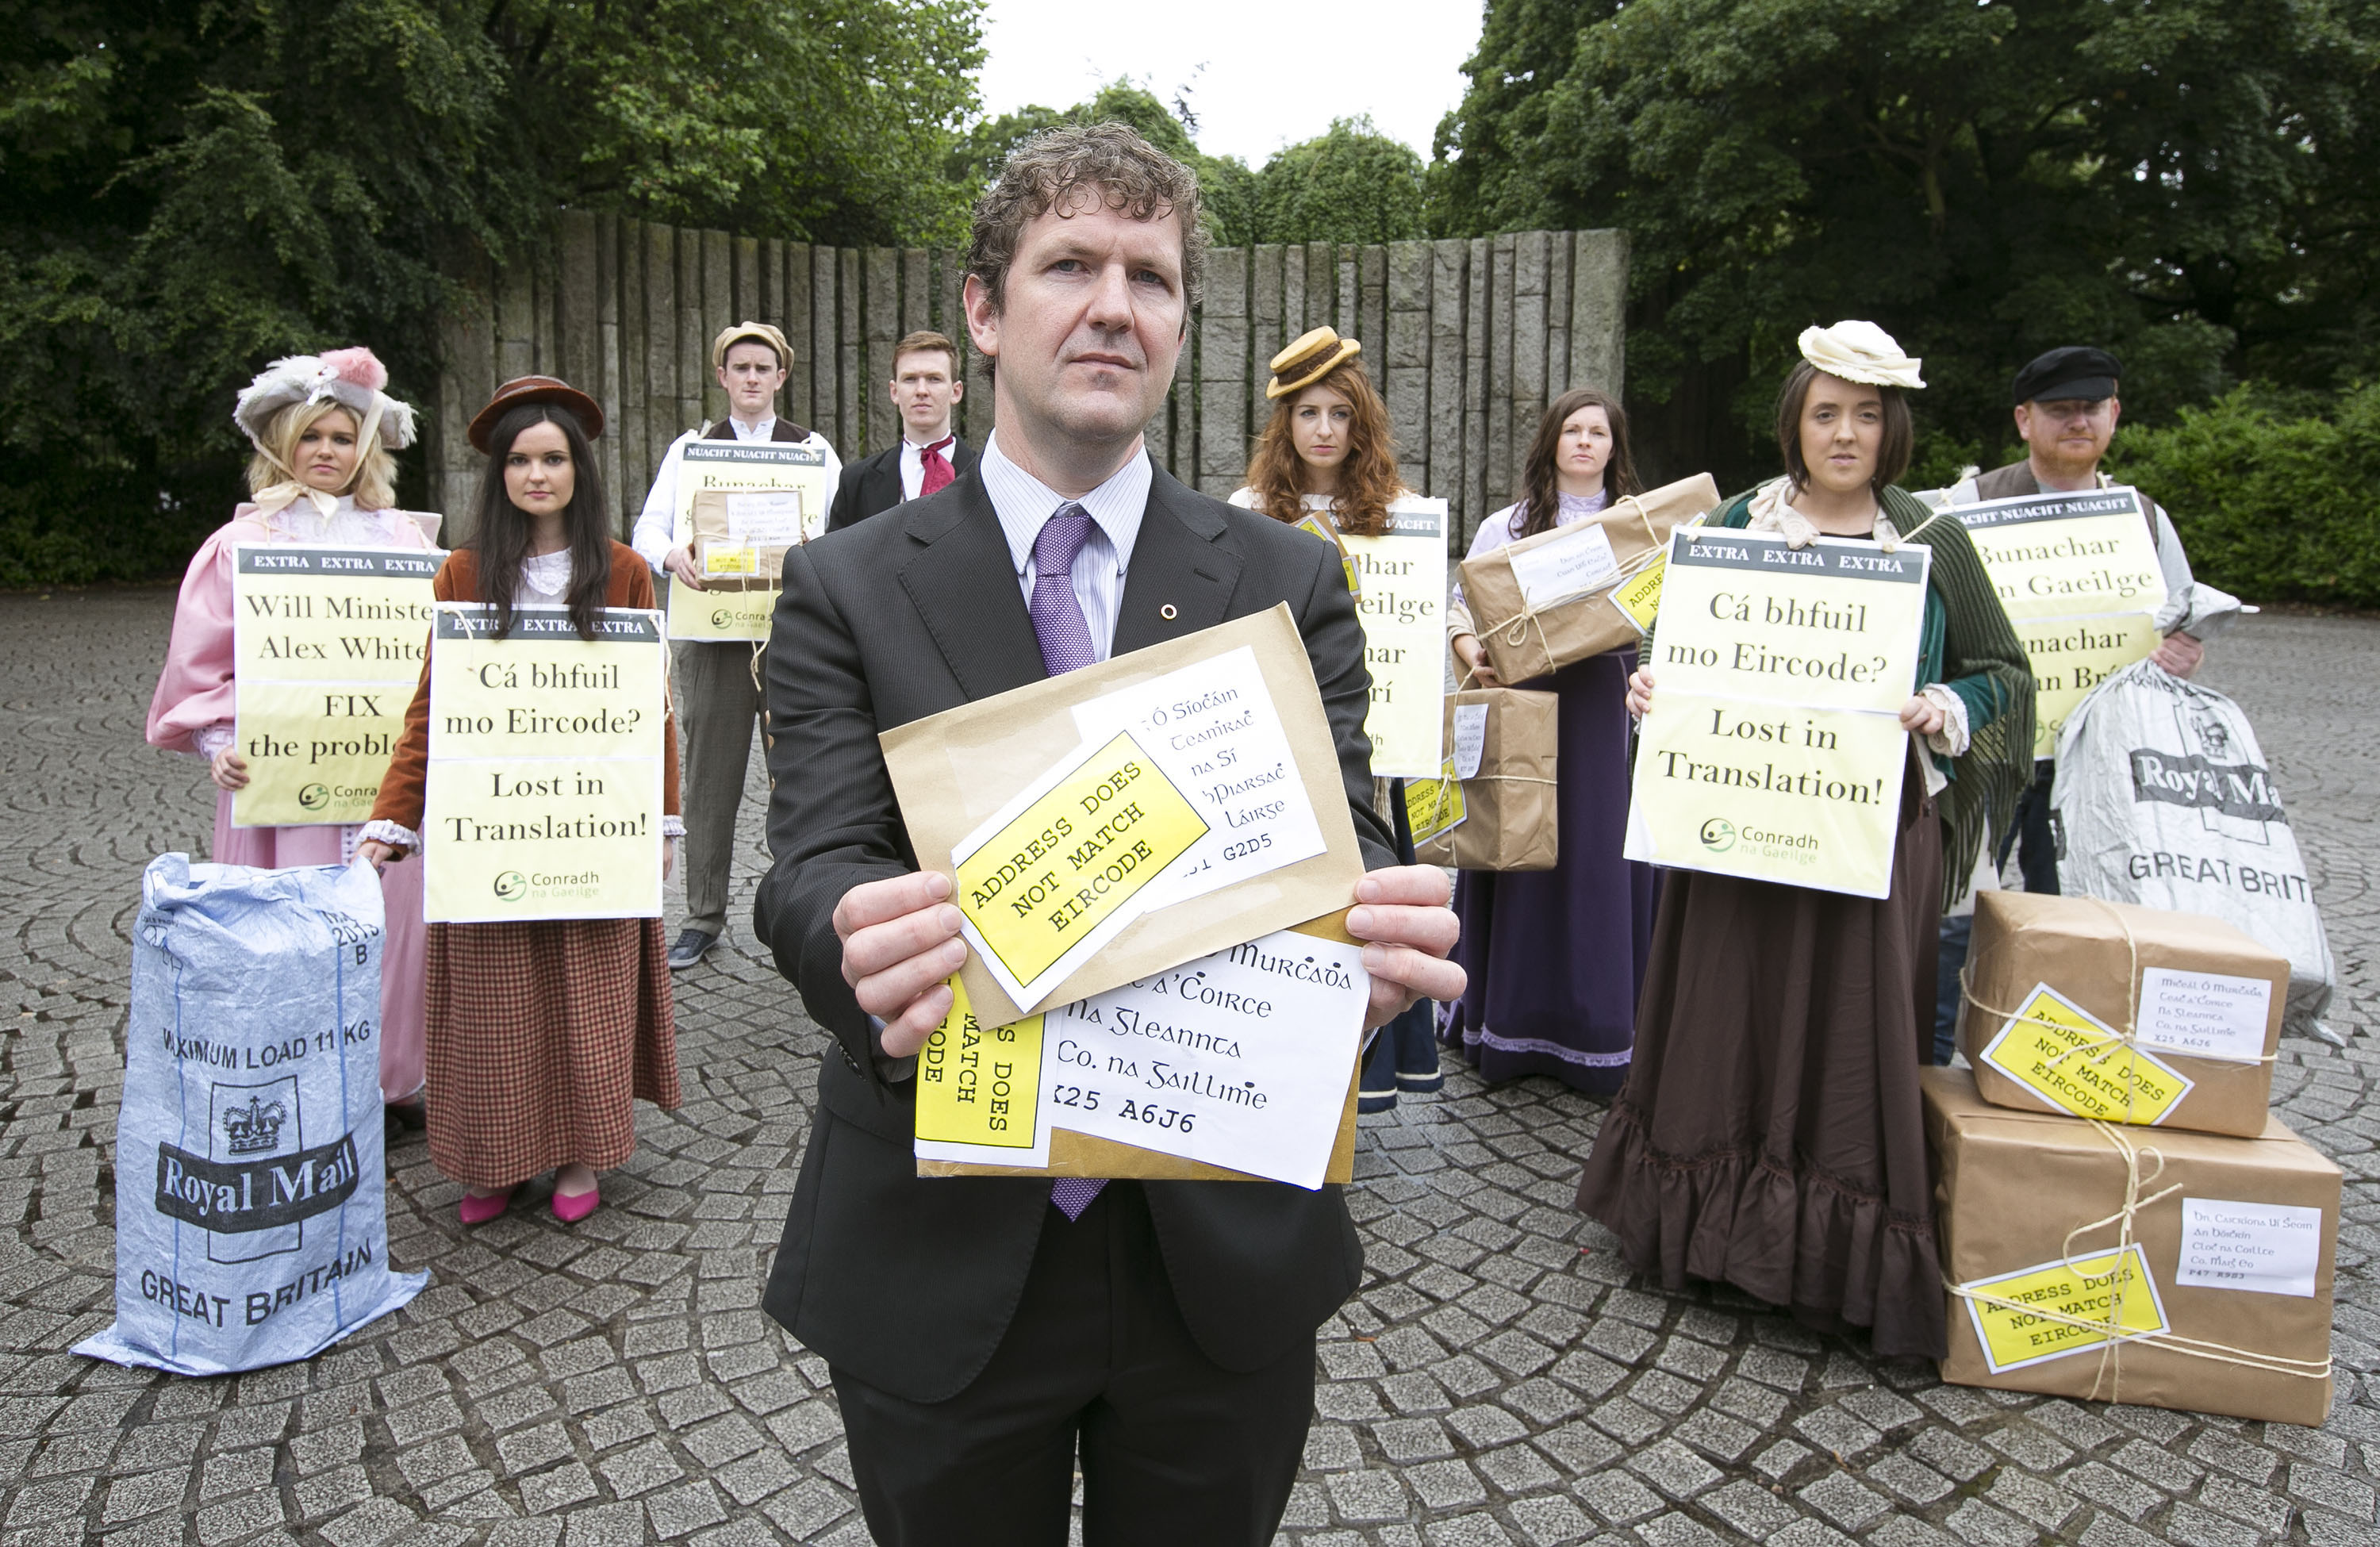 Conradh na Gaeilge protest at the launch of Eircode